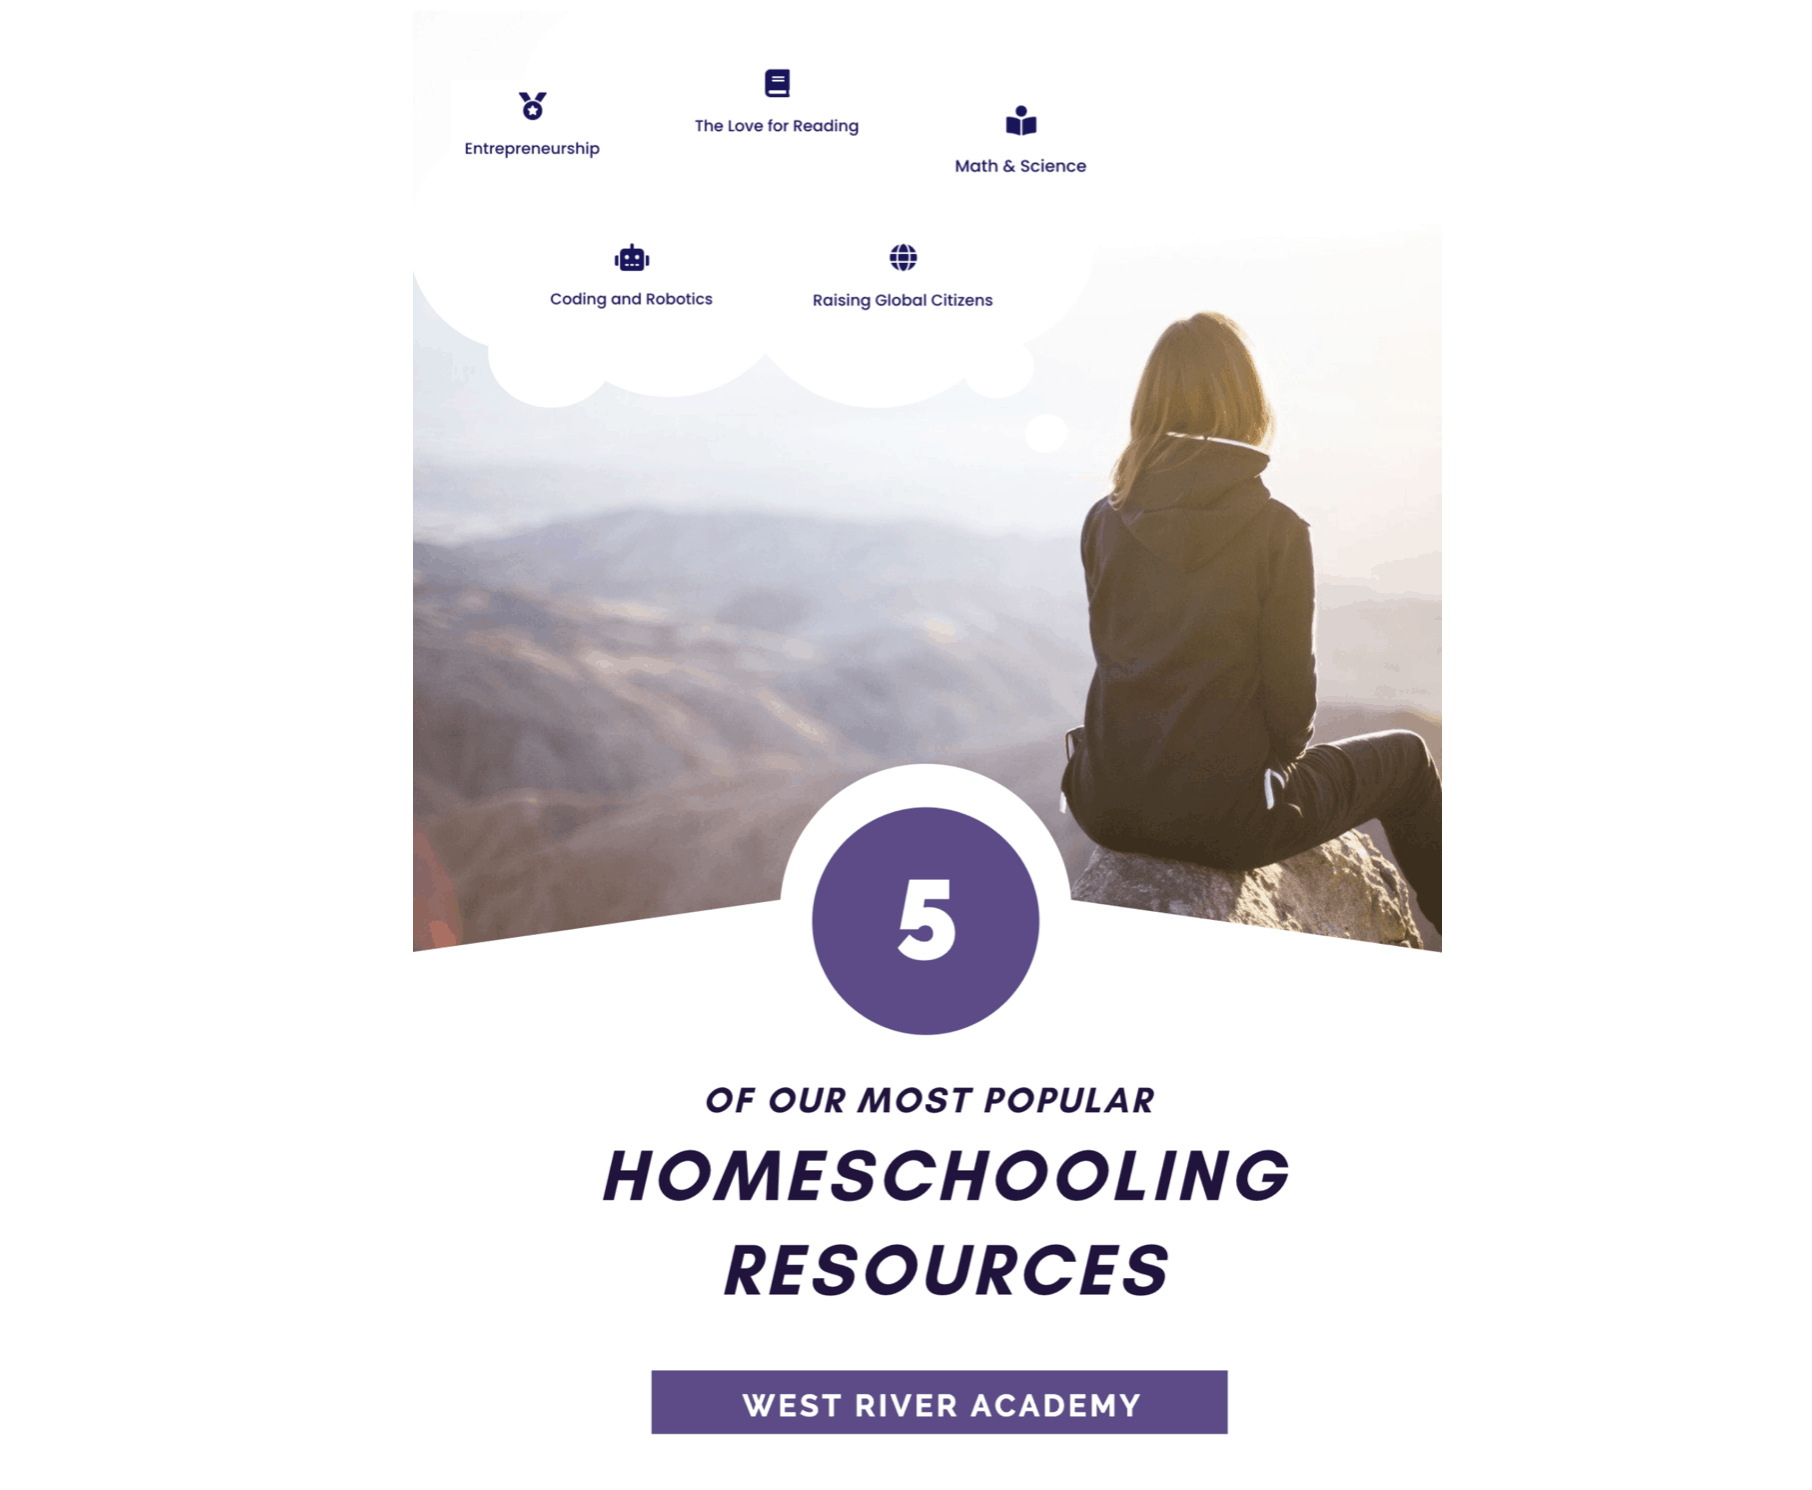 Top 5 Online Homeschooling Resources